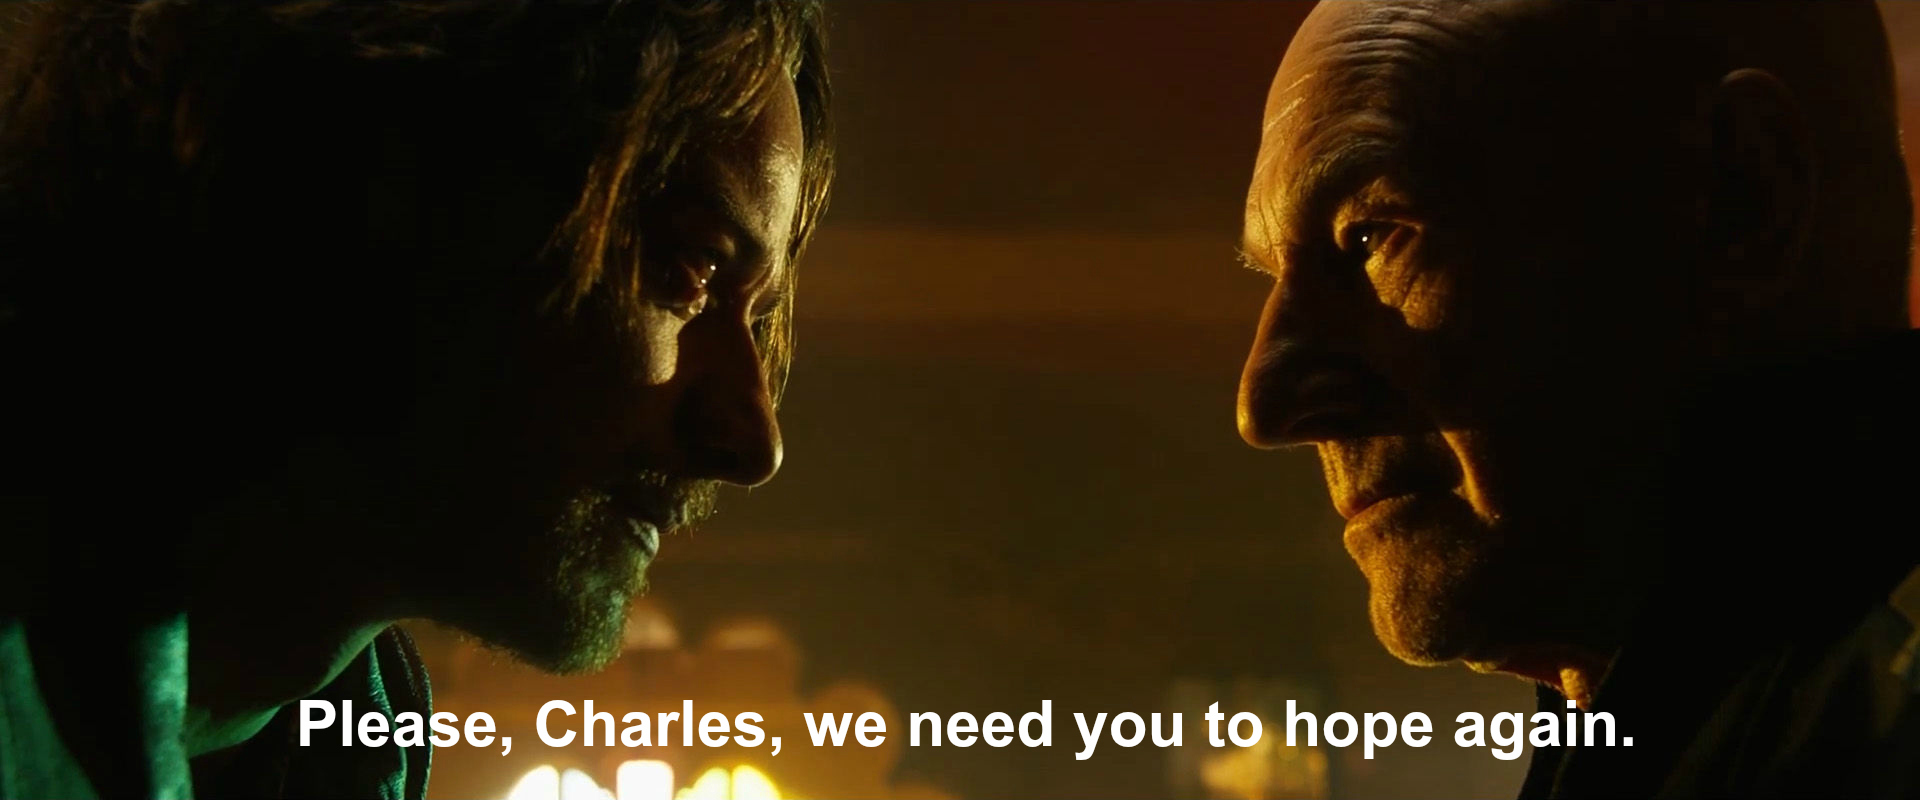 Charles Xavier we need you to hope again